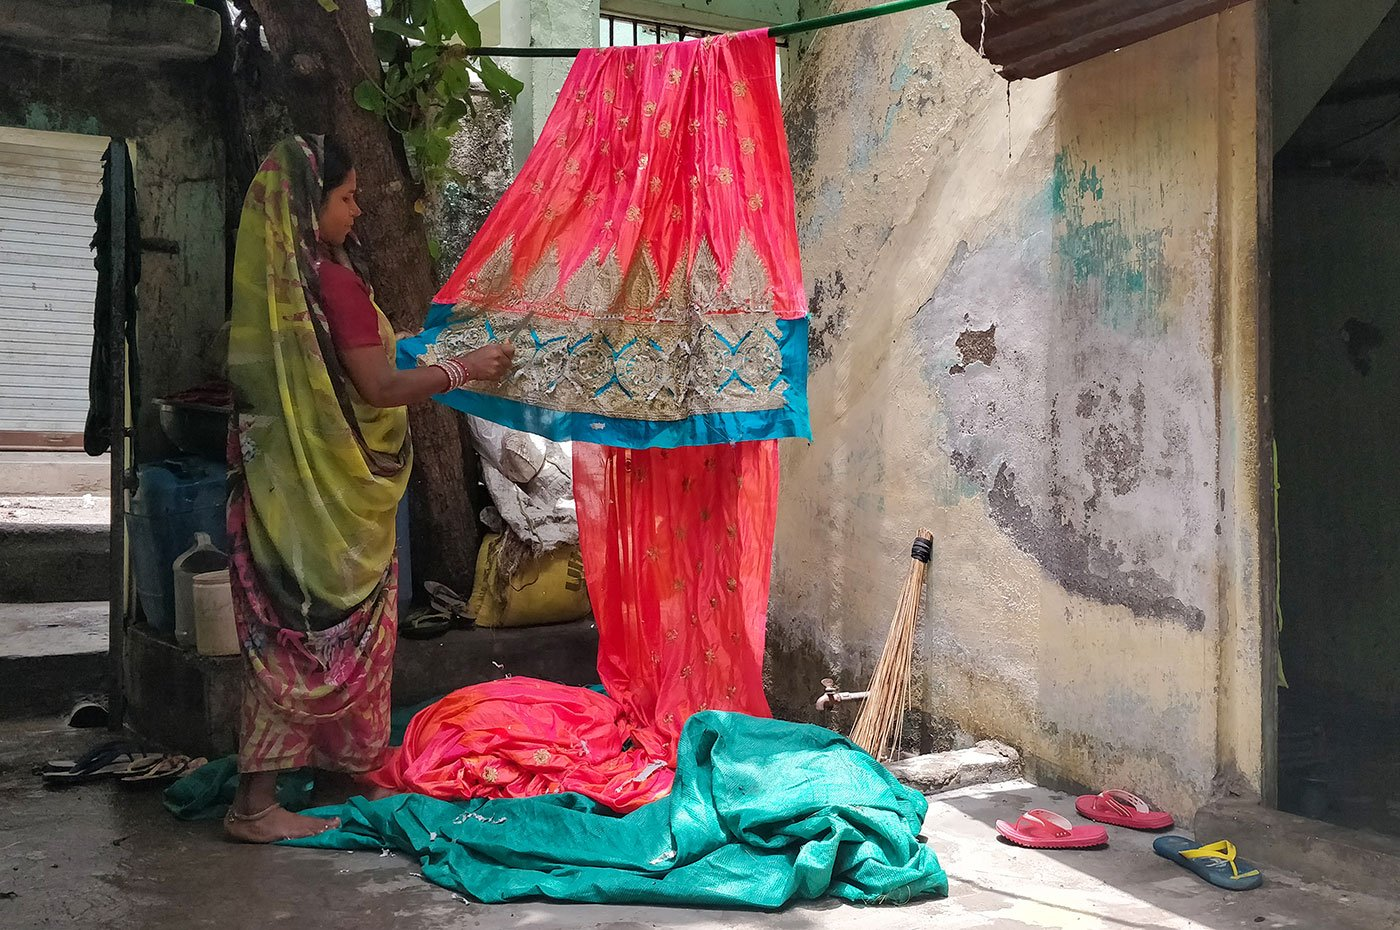 Renuka Pradhan's one-room home in the Mina Nagar area of north Surat turns into her working space every morning. She cuts threads out of more than 75 saris every day. The constant work has led to cuts and bruises on her fingers